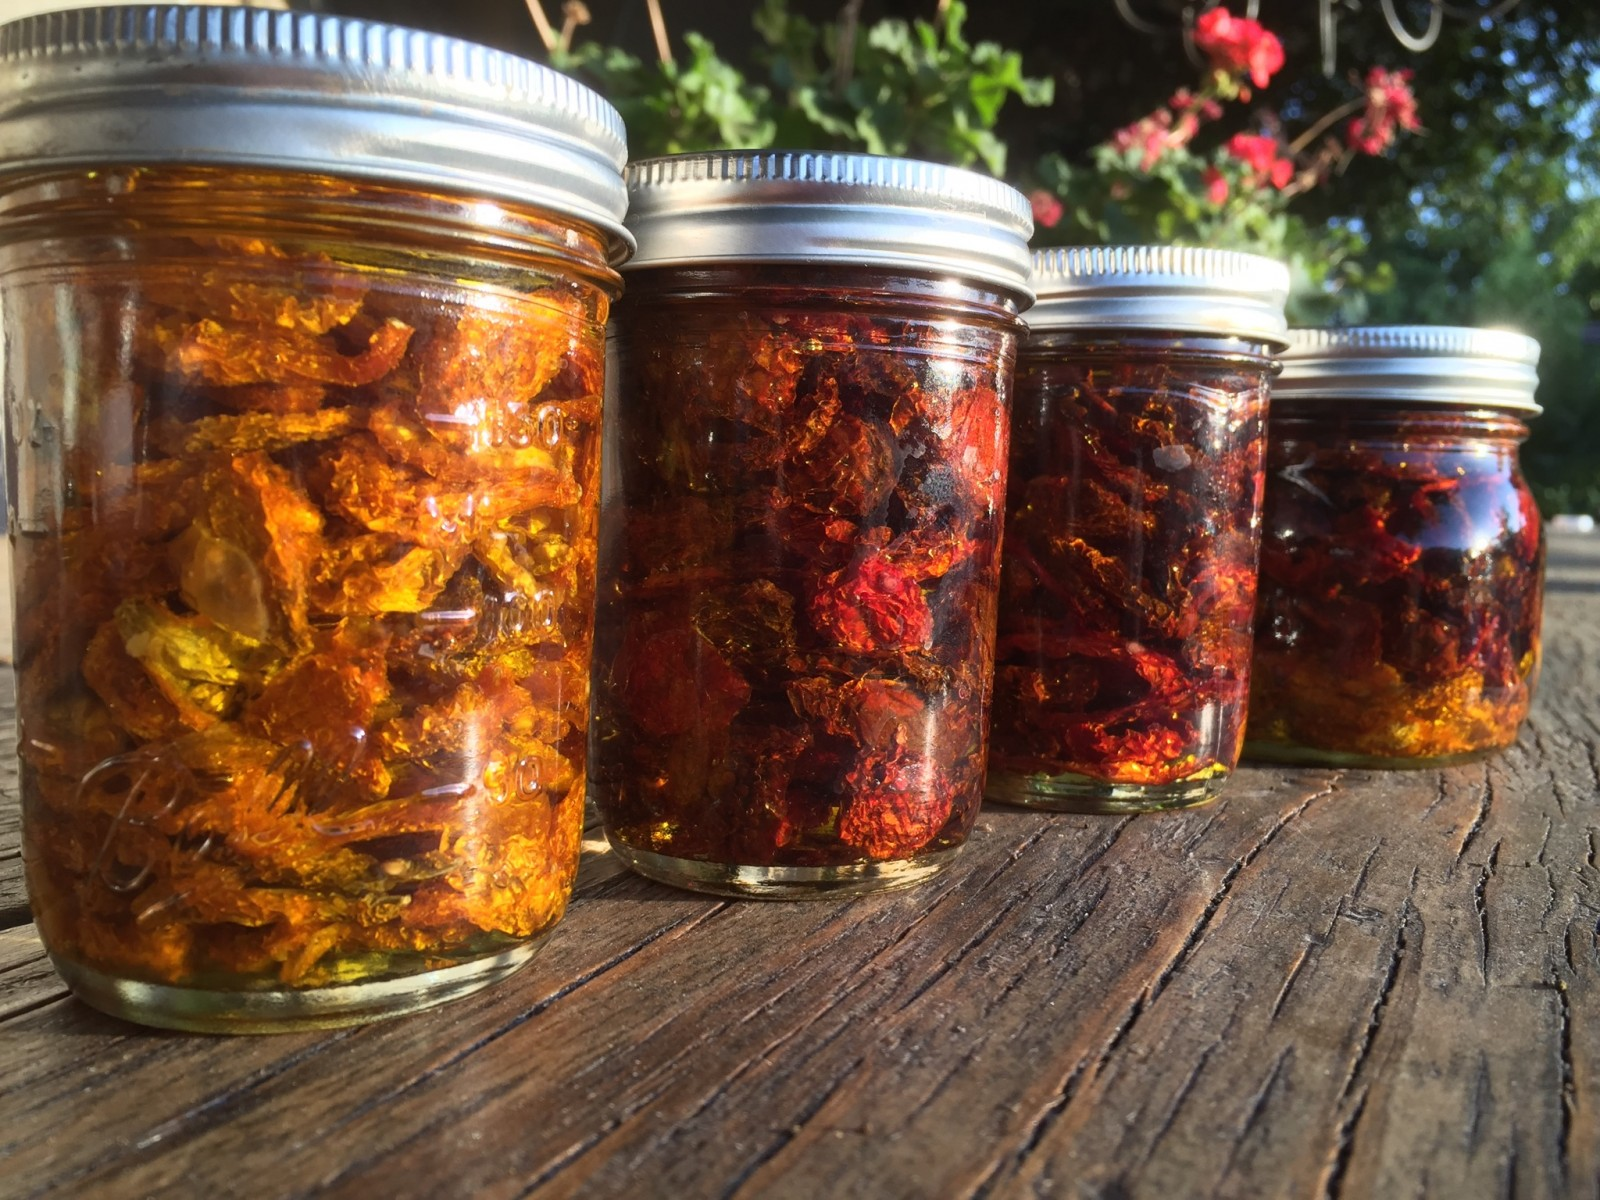 Wine soaked sundried tomatoes garden variety life Sun garden riesling